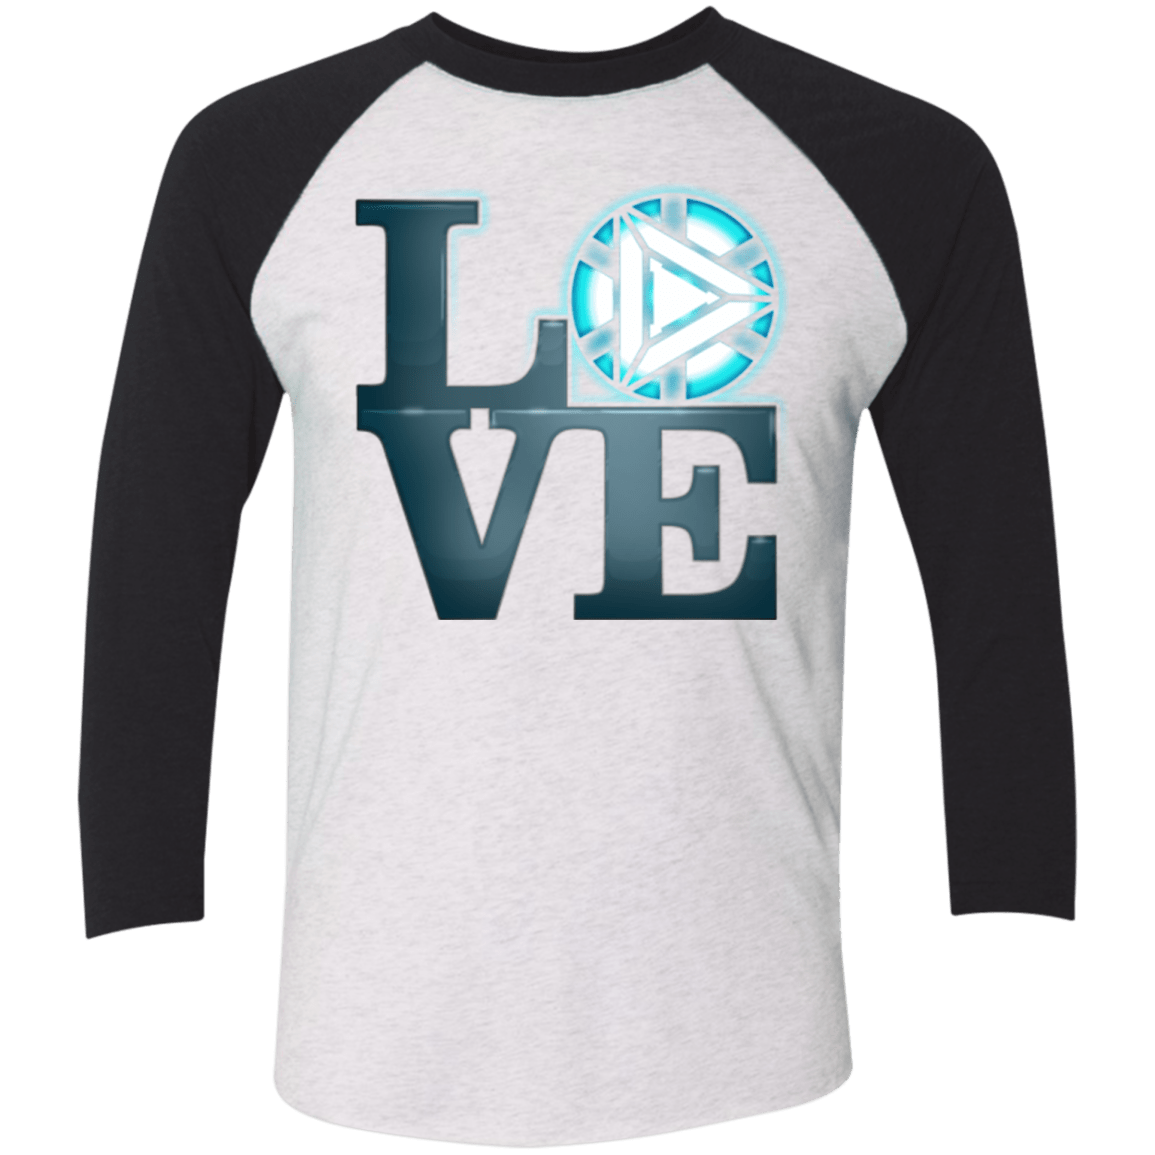 T-Shirts Heather White/Vintage Black / X-Small Love Stark Men's Triblend 3/4 Sleeve